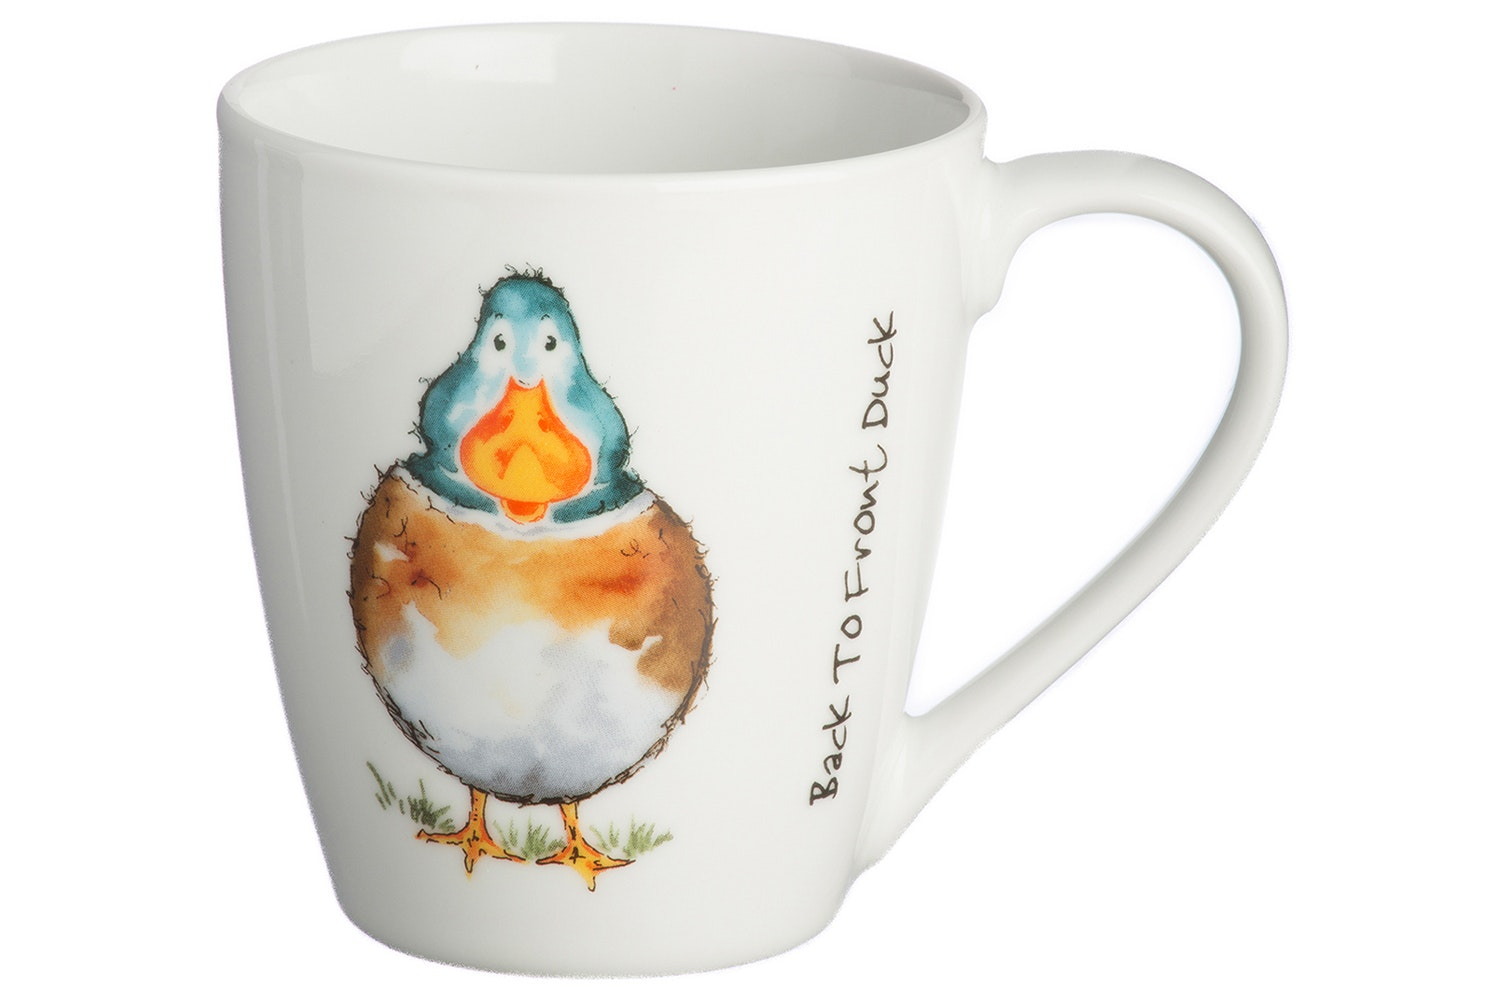 P&K Back To Front Duck Mug|350ml